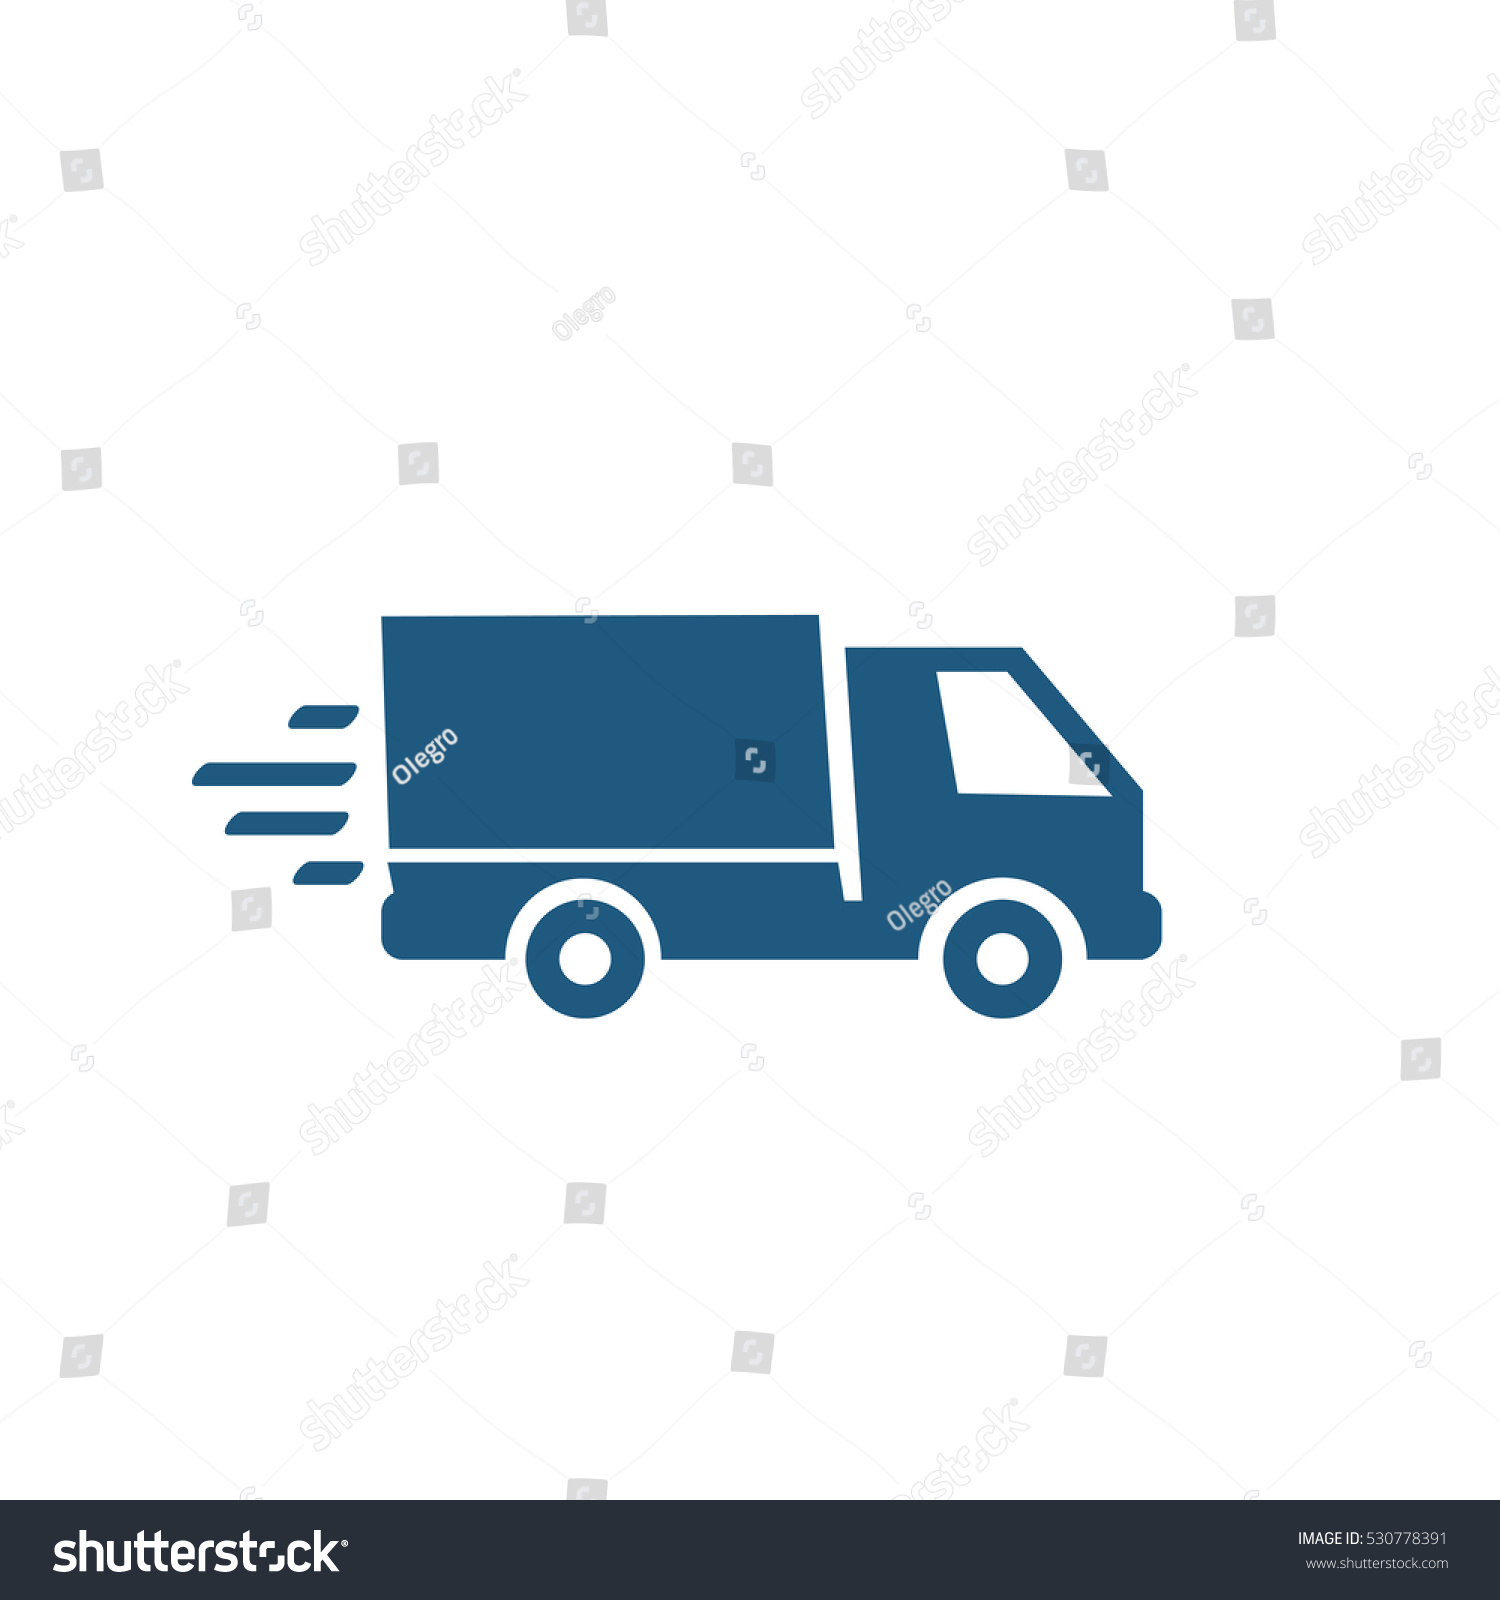 delivery truck icon vector - photo #47